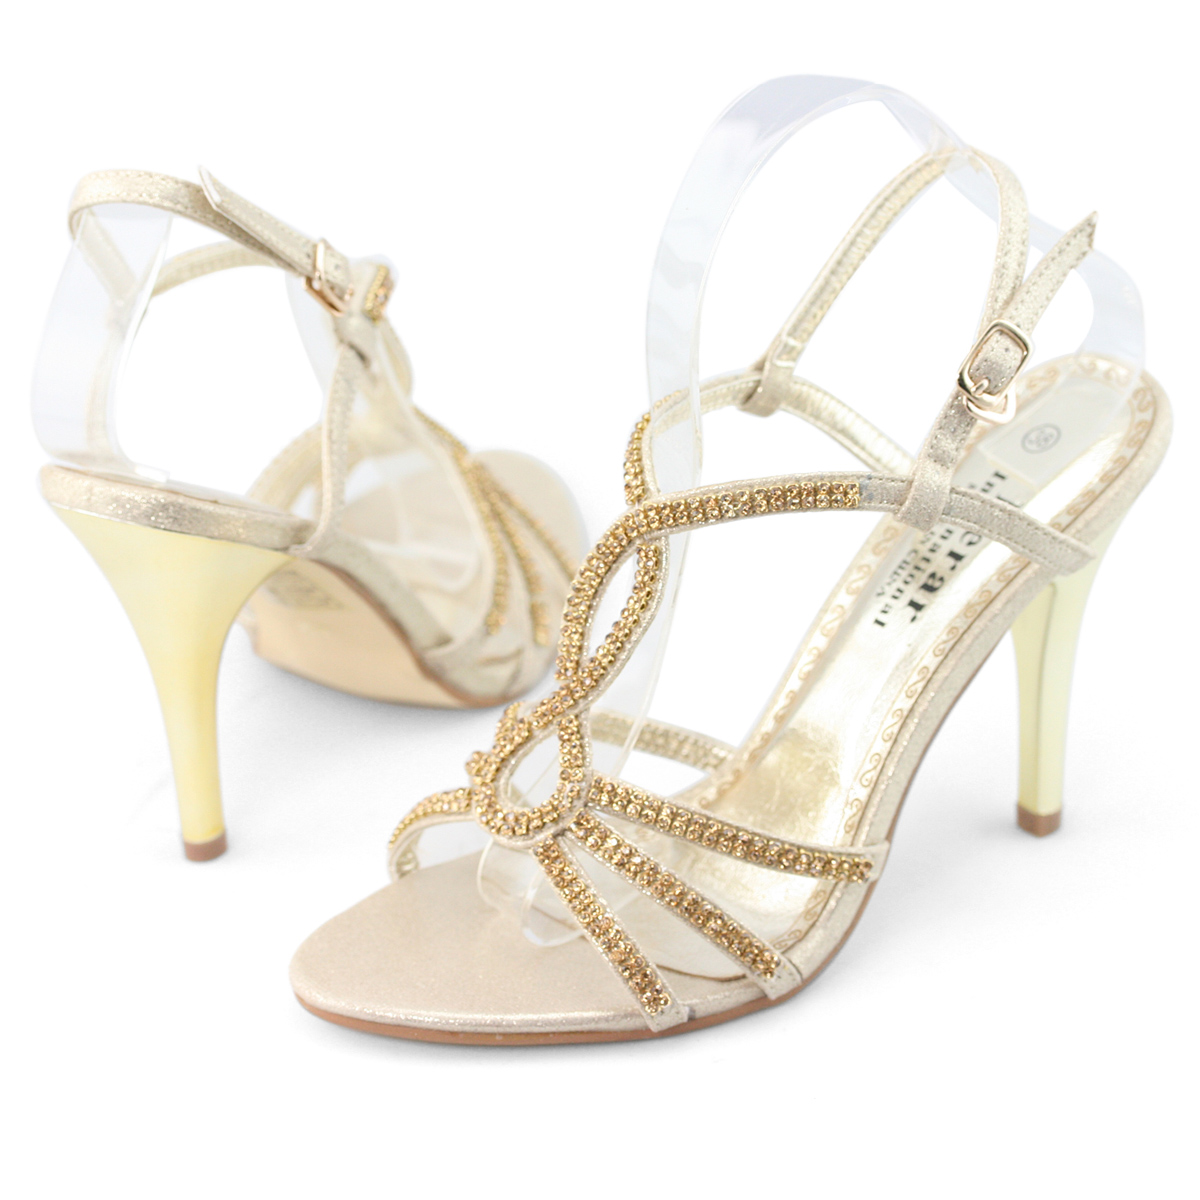 SHOEZY-Womens-Strappy-Crystal-Wedding-Bridesmaid-Evening-Dress-High-Heels-Shoes